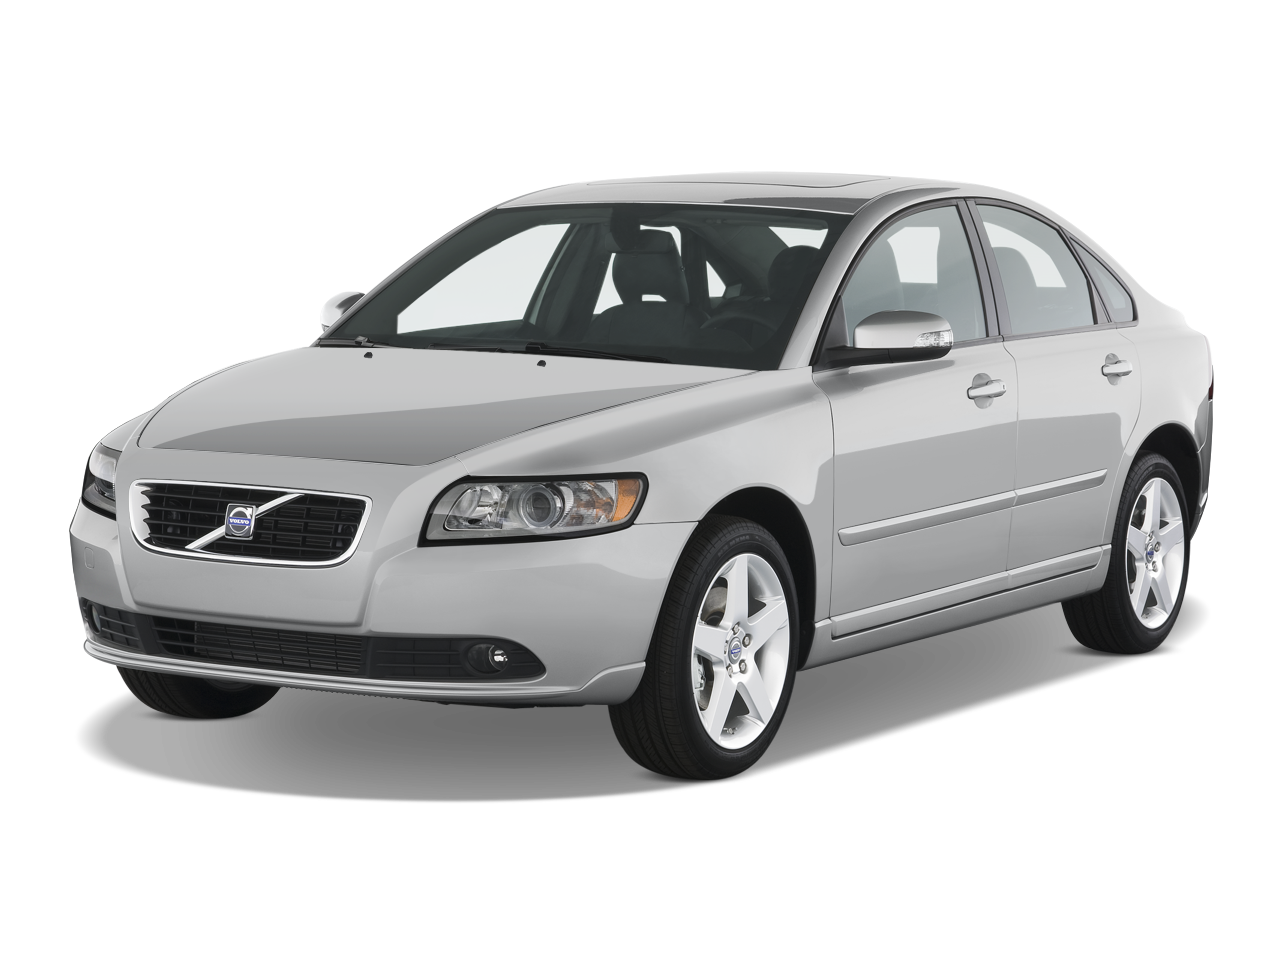 2008 volvo s40 sedan and v50 wagon latest news auto. Black Bedroom Furniture Sets. Home Design Ideas